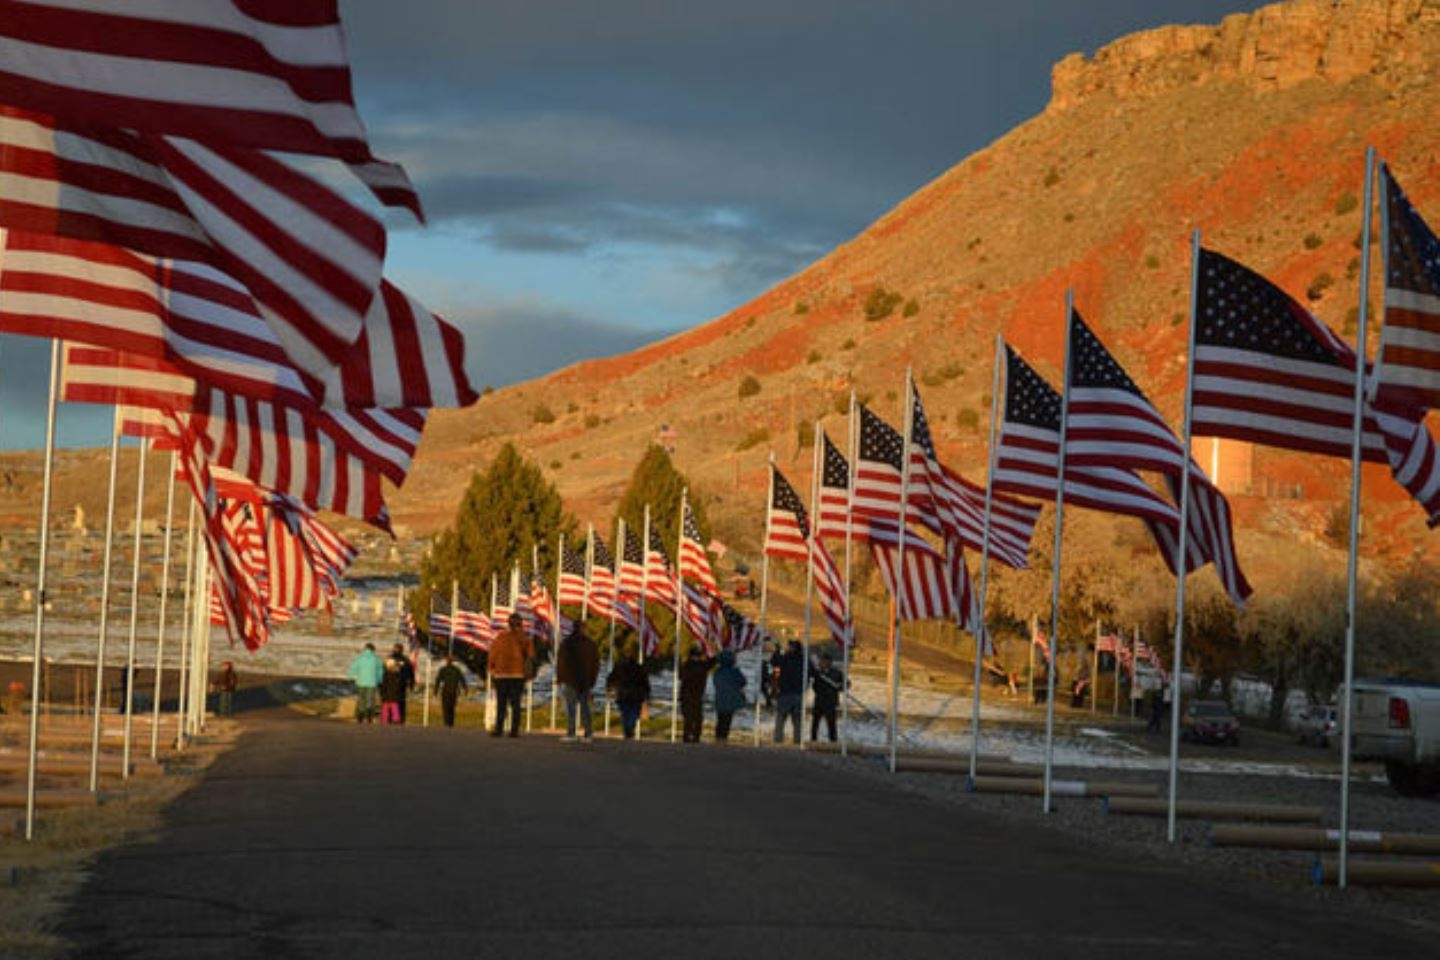 Veterans Day 2017, Thermopolis, WY